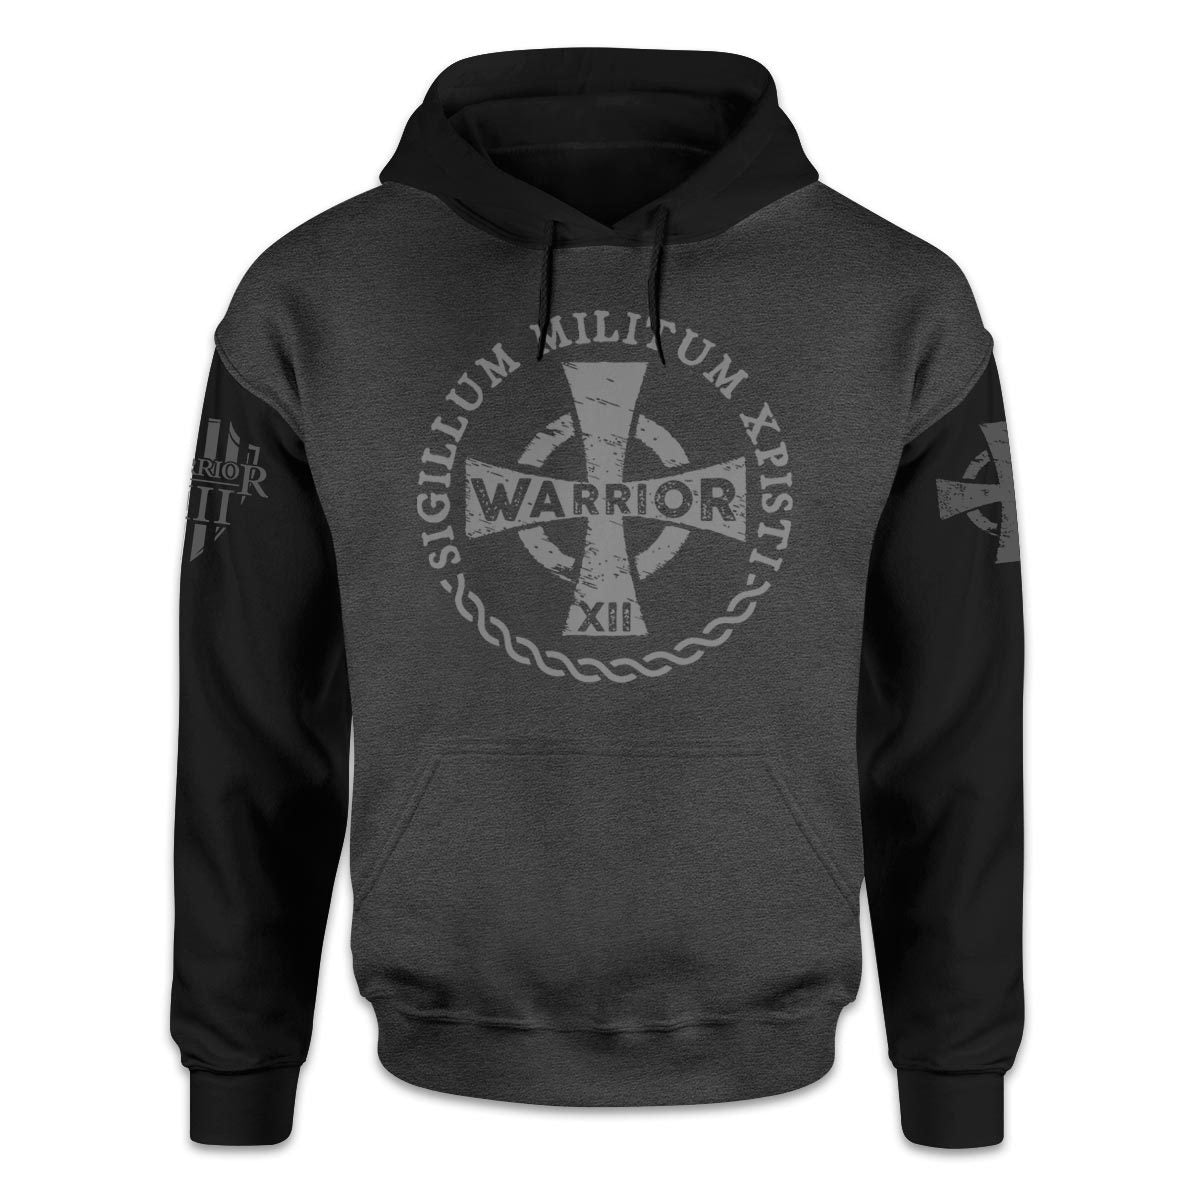 Warrior Of Christ Hoodie